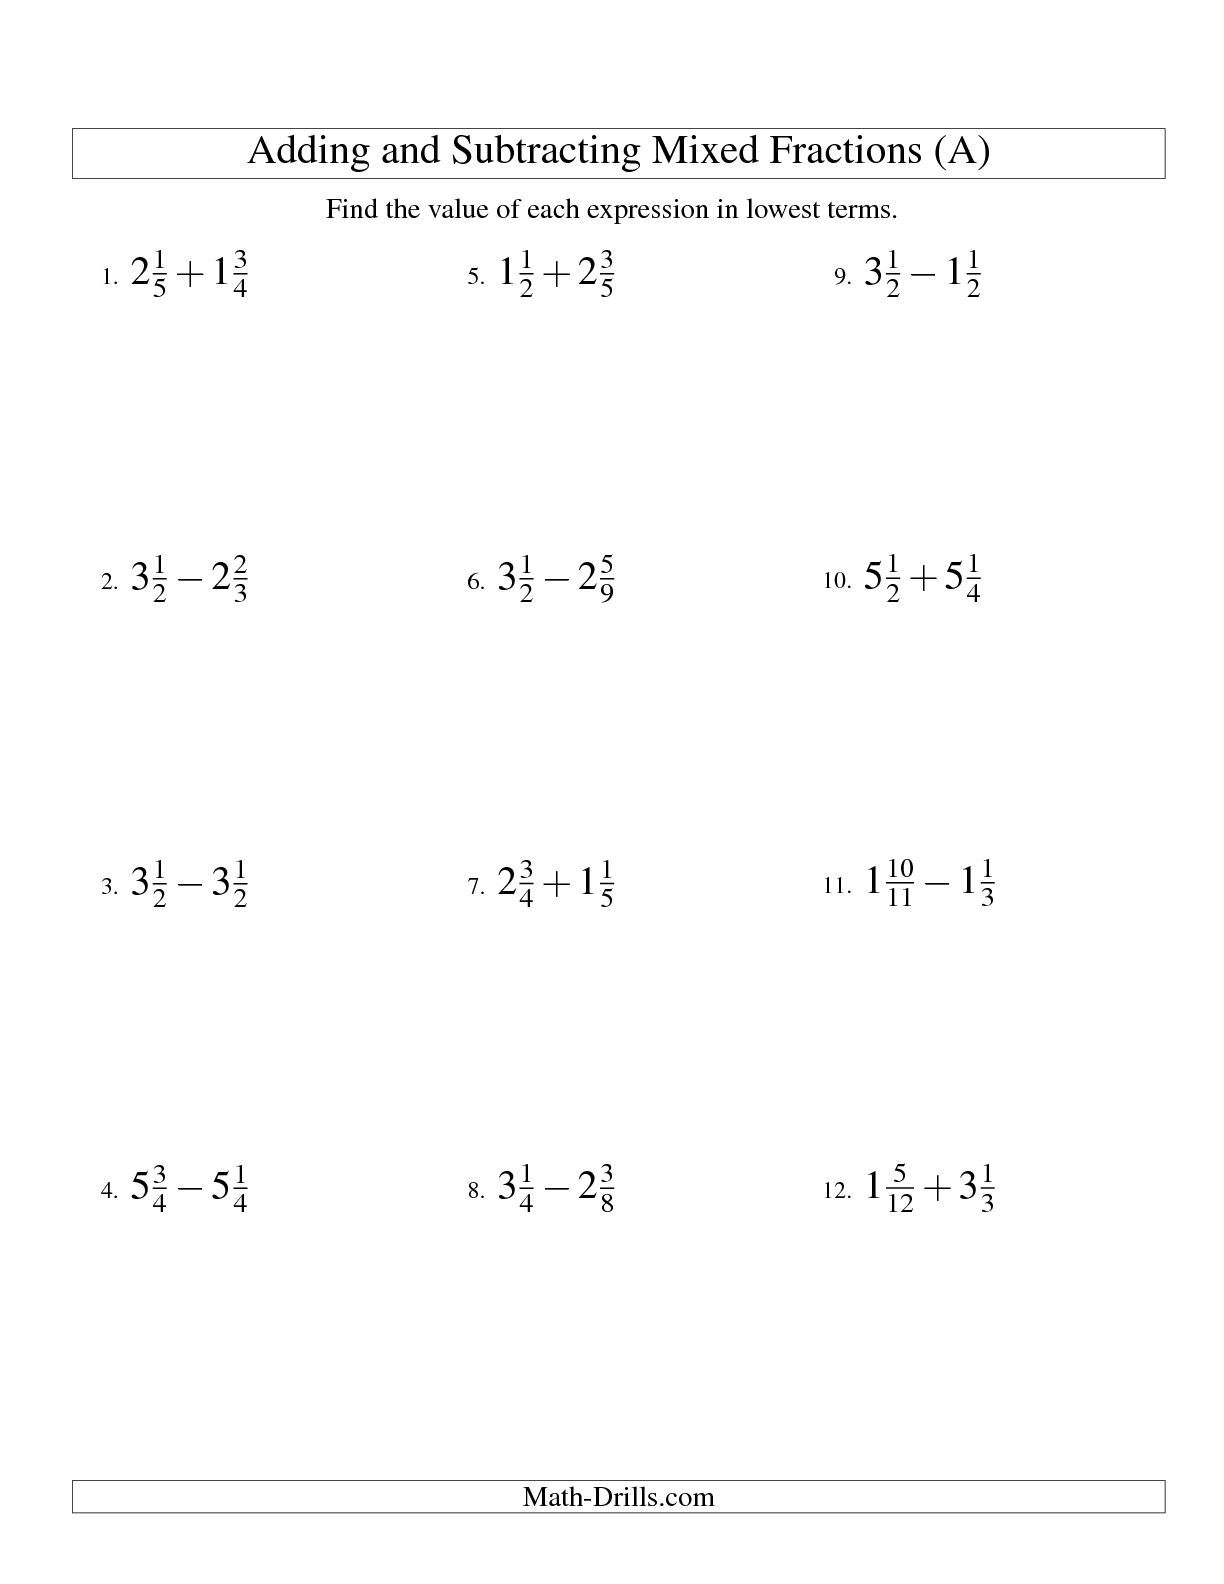 The Adding and Subtracting Mixed Fractions (A) math worksheet from the Fractions  Worksheet page at Math-D…   Fractions worksheets [ 1584 x 1224 Pixel ]